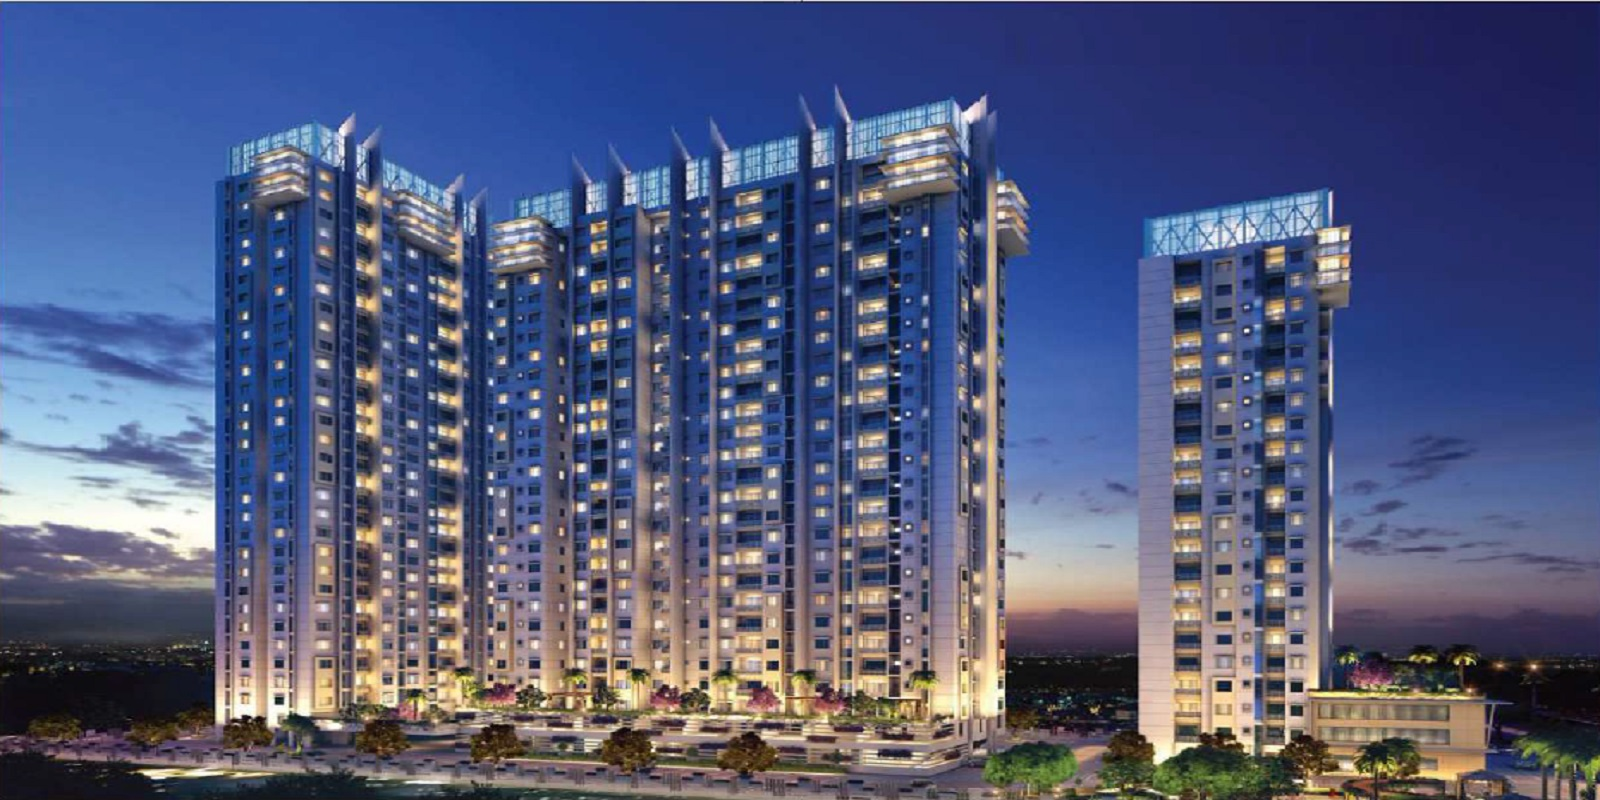 baashyaam pinnacle crest project large image2